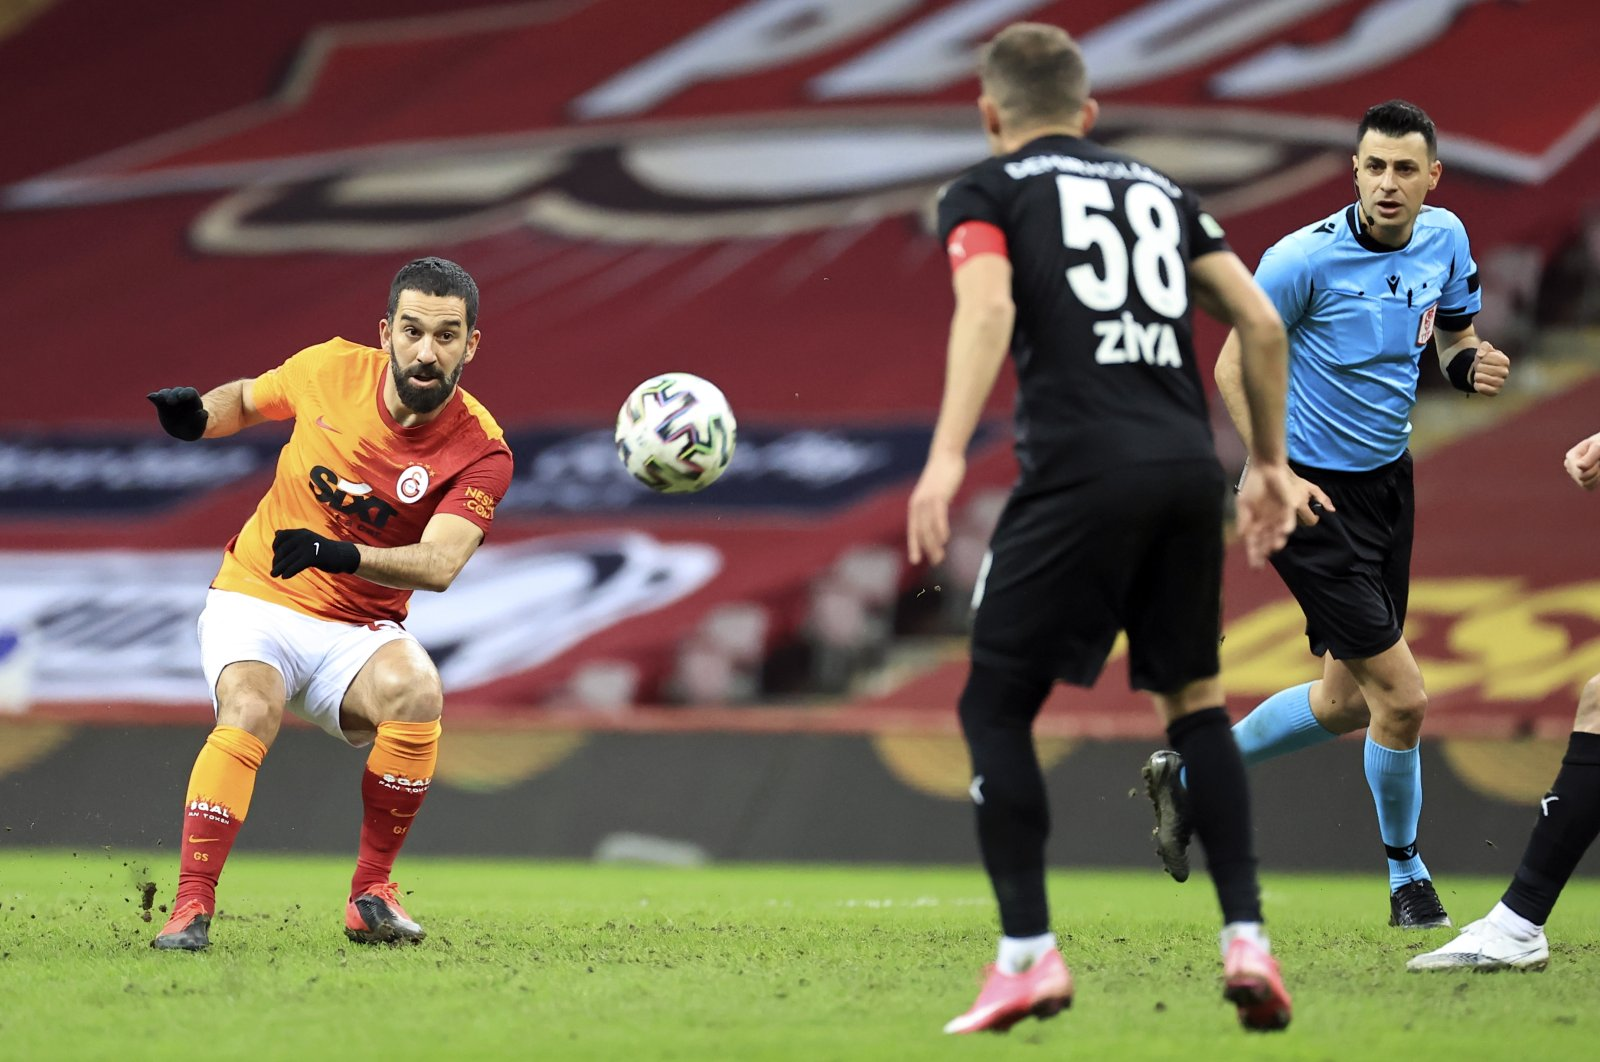 Galatasaray's Arda Turan (L) shoots as Sivasspor's Ziya Erdal (R) looks on during a Turkish Süper Lig match at the Türk Telekom Stadium, Istanbul, Turkey, March 8, 2021. (AA Photo)